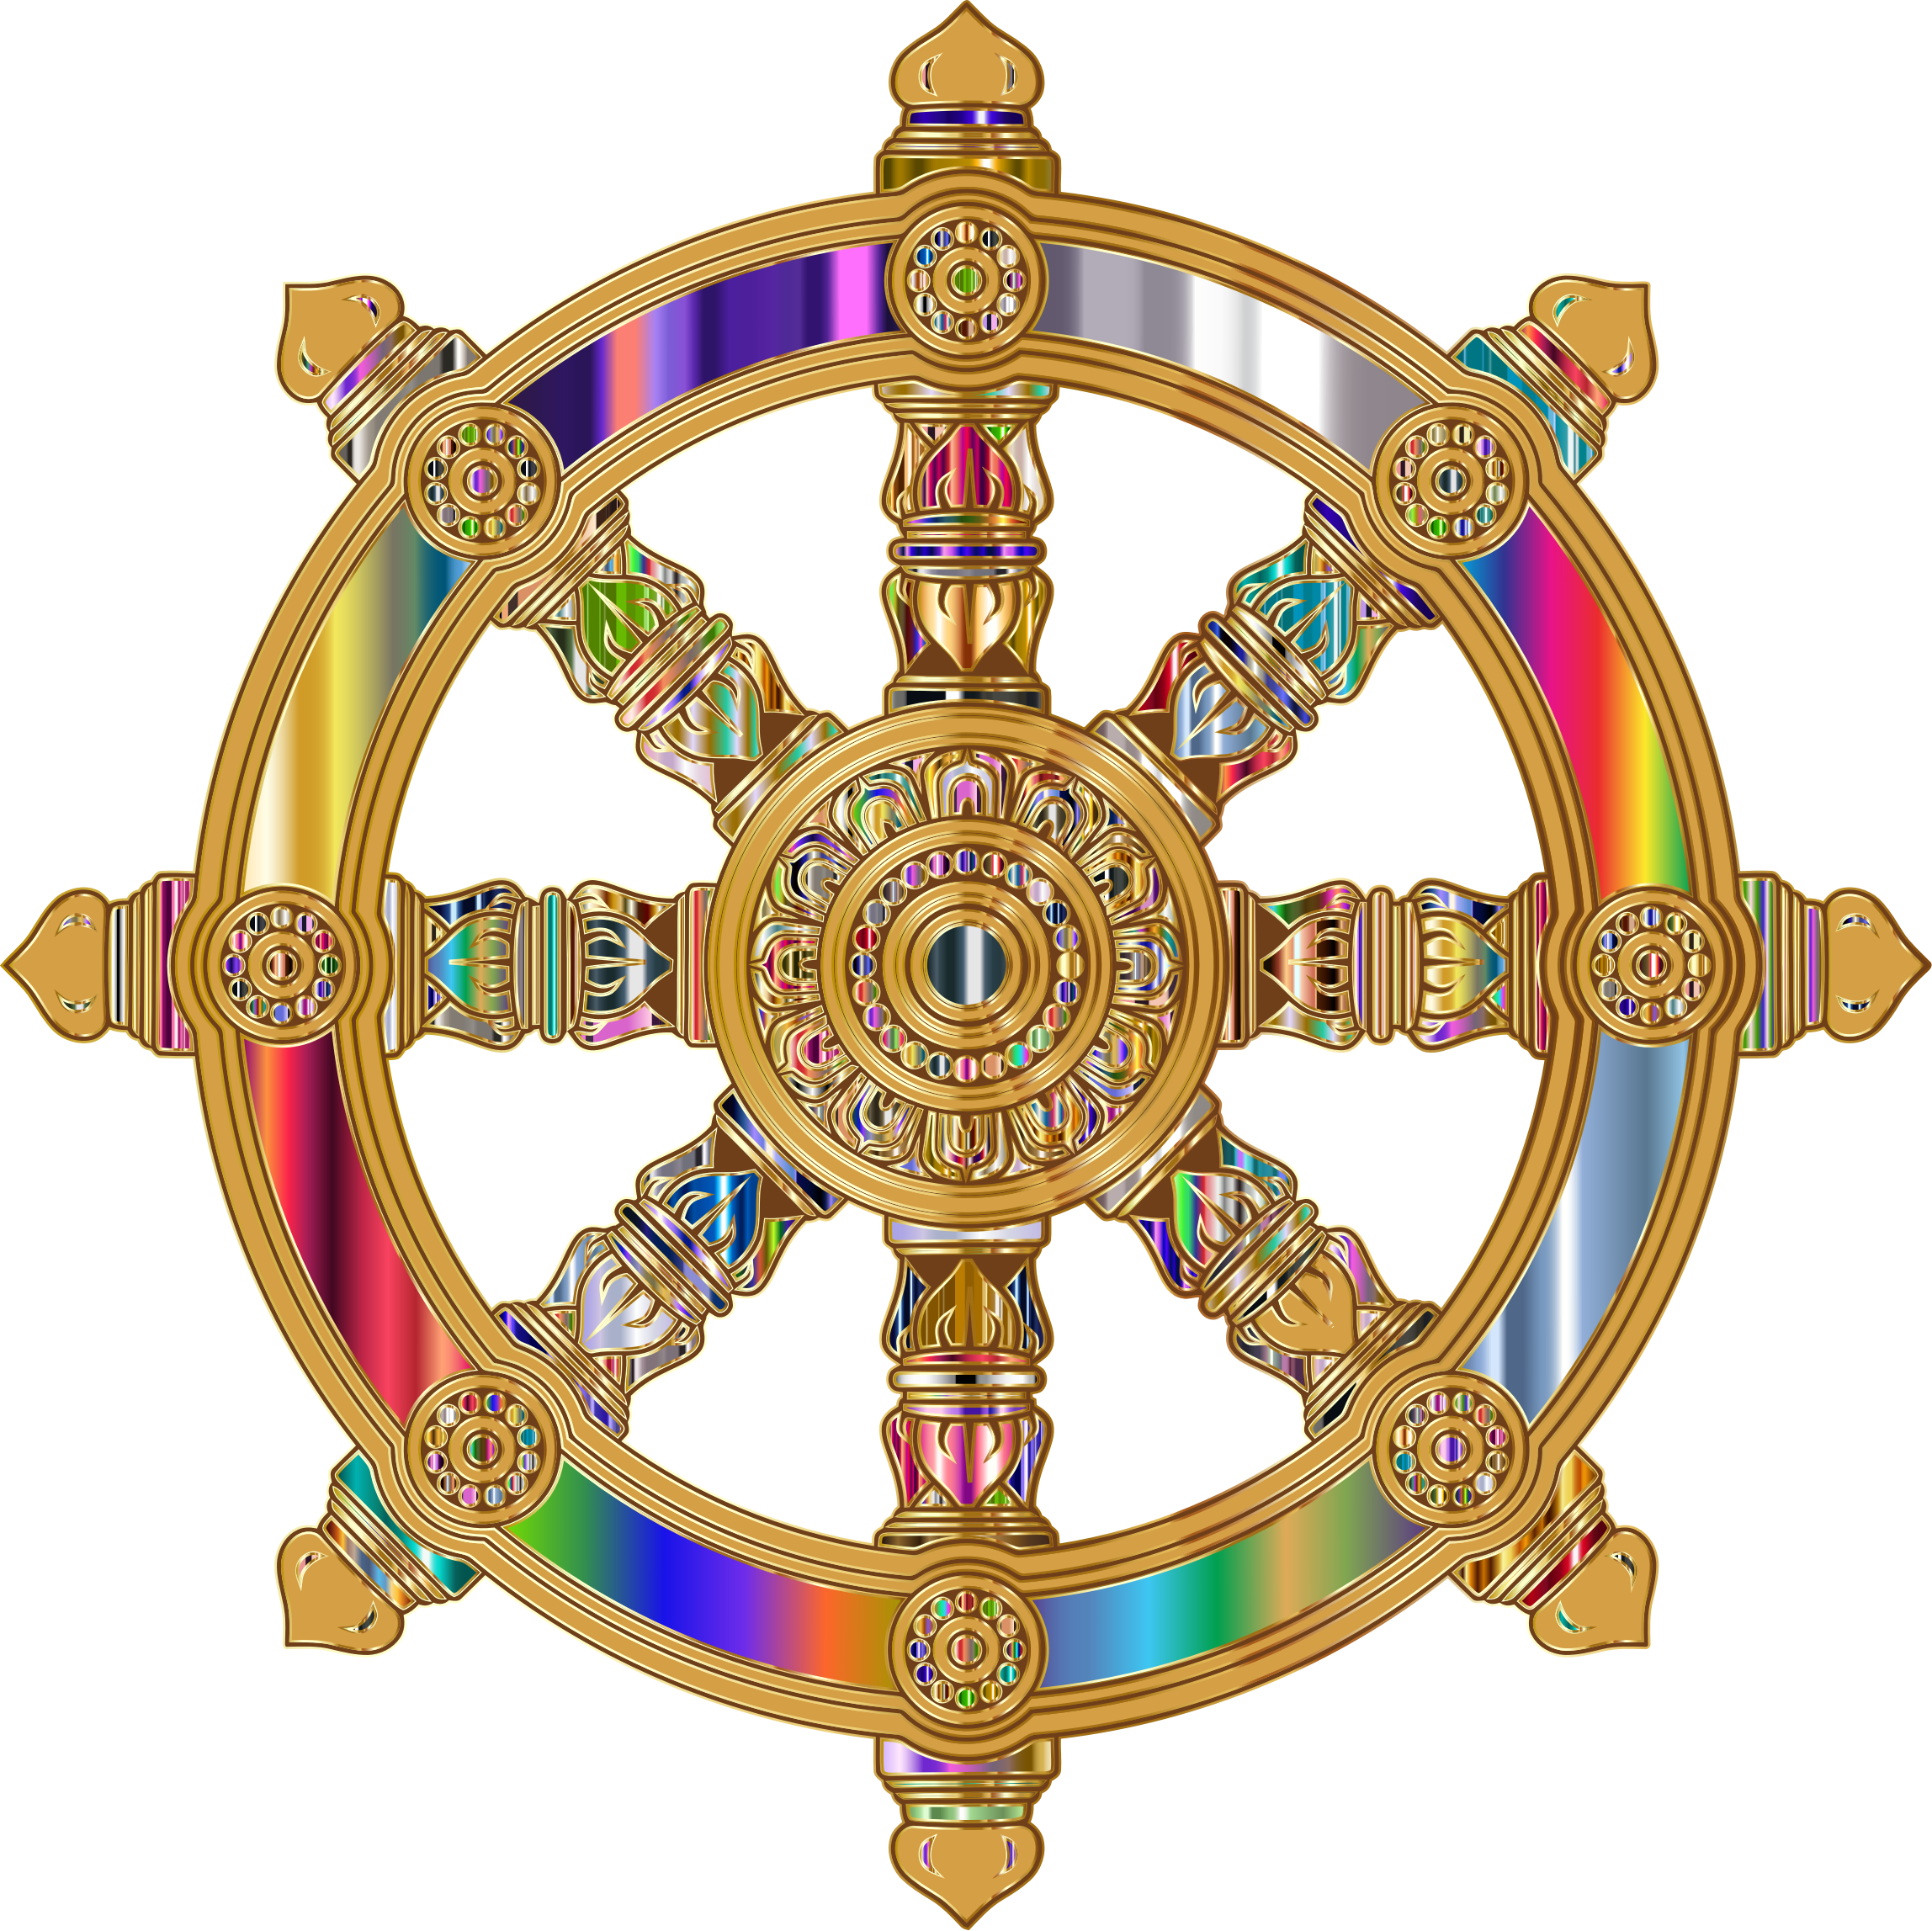 Prismatic Ornate Dharma Wheel 7 by GDJ